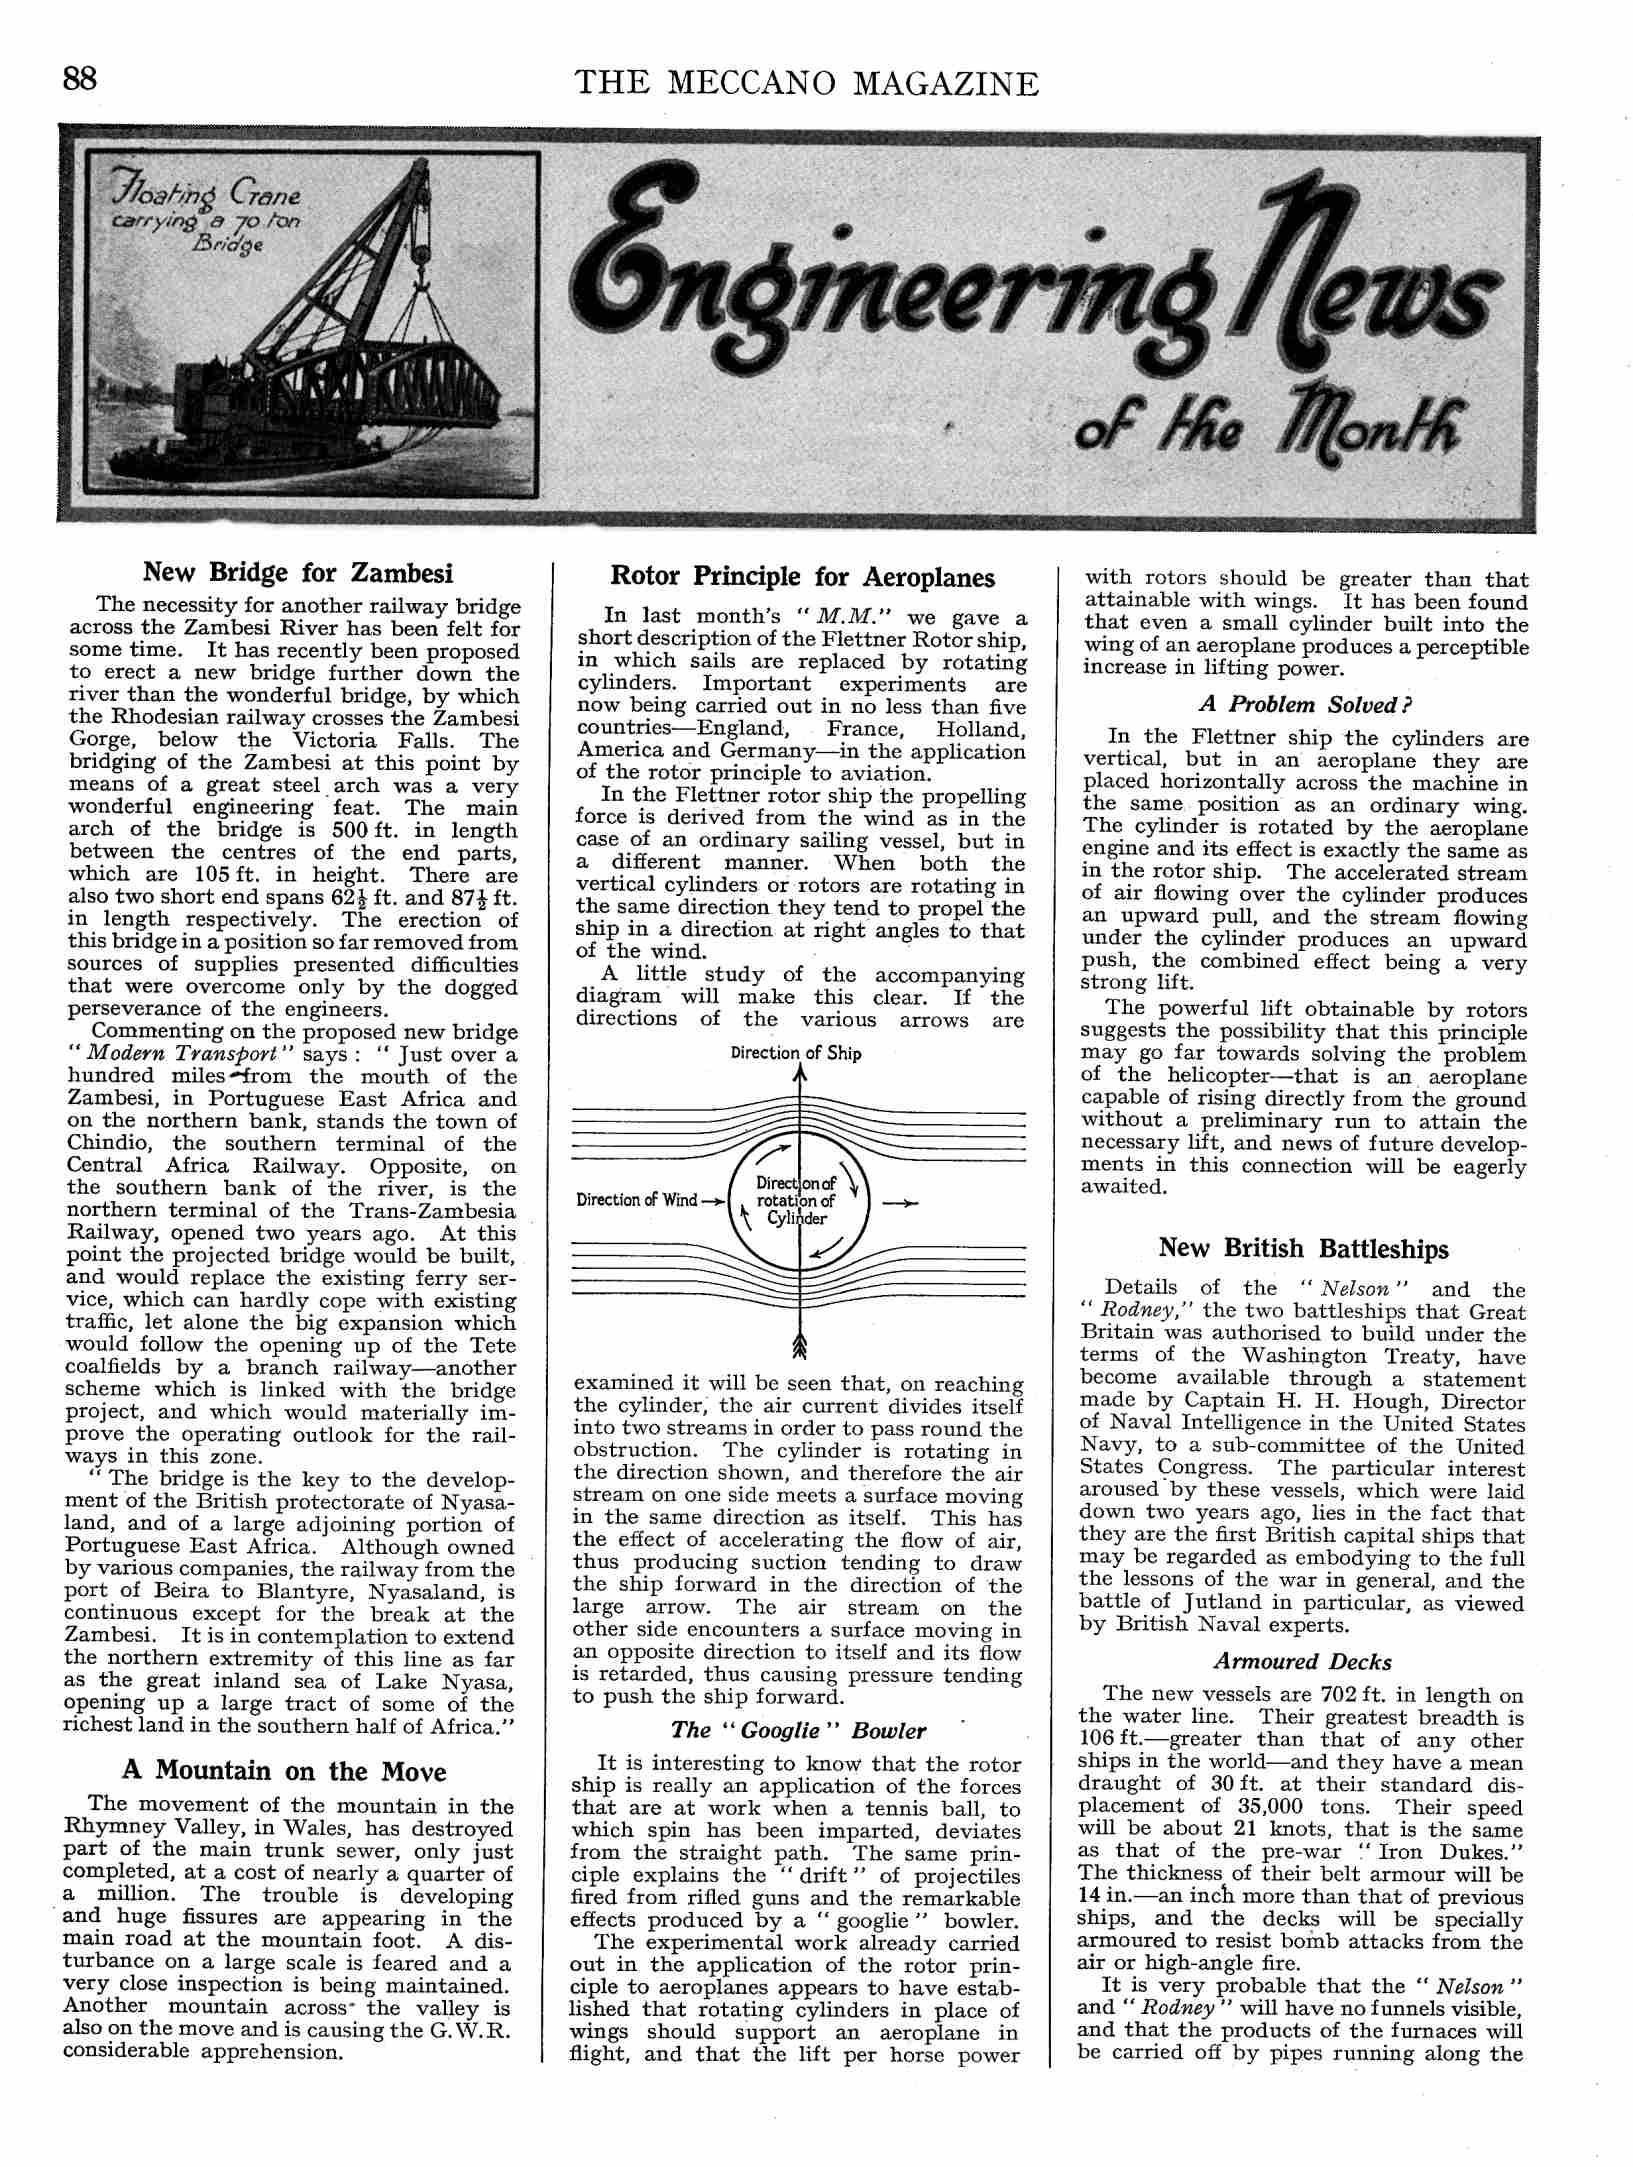 UK Meccano Magazine February 1925 Page 88